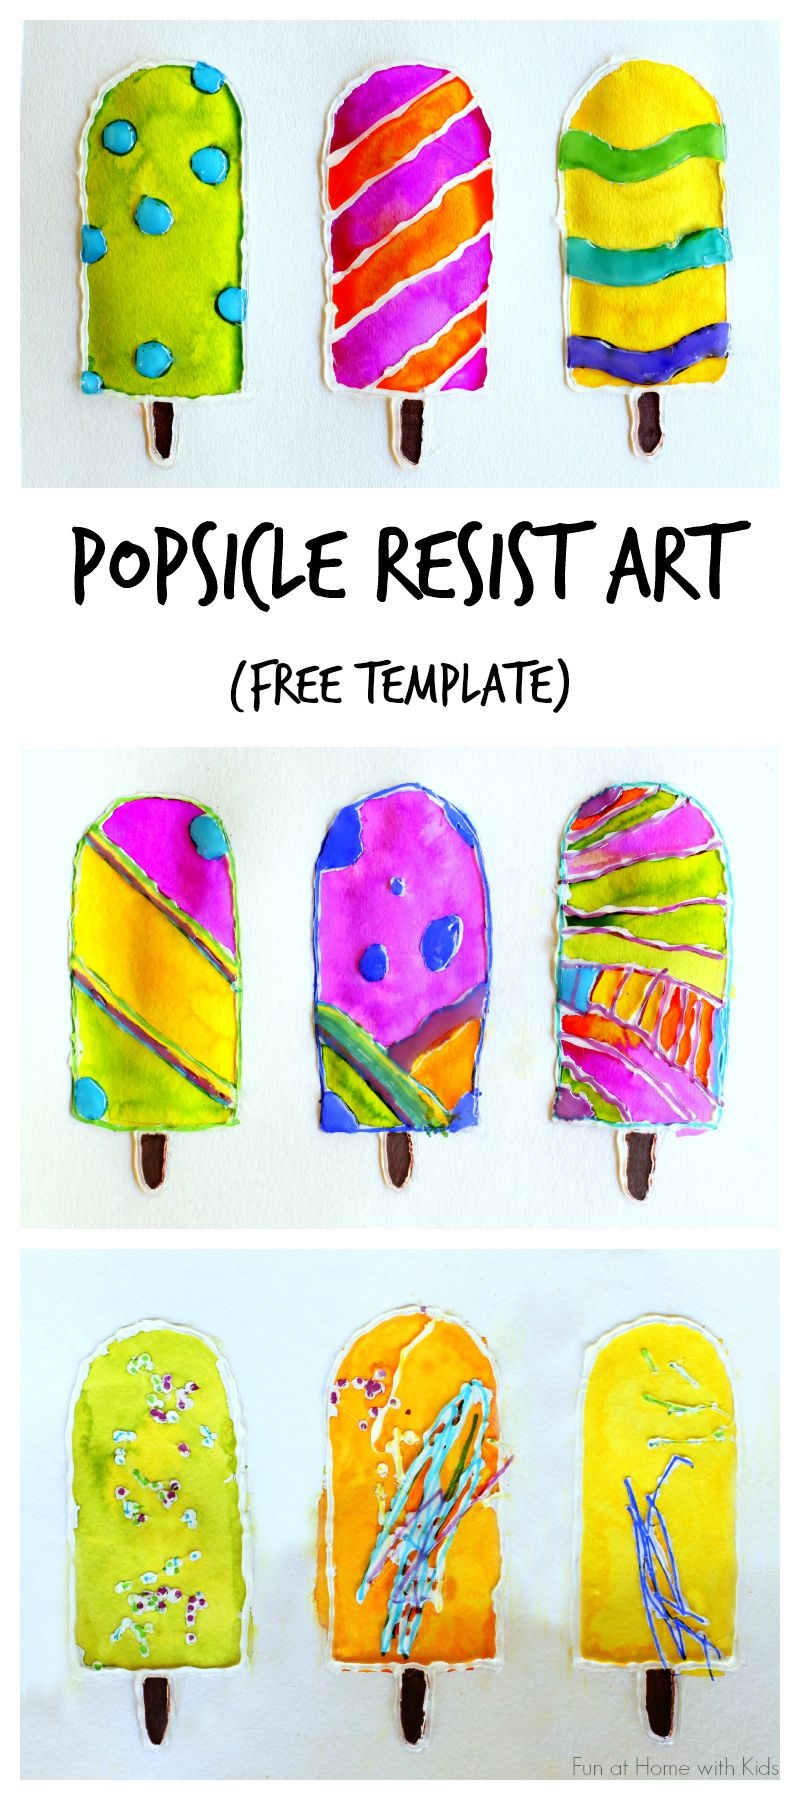 Popsicle Resist Art With Free Popsicle Template | New Teachers - Free Printable Popsicle Template